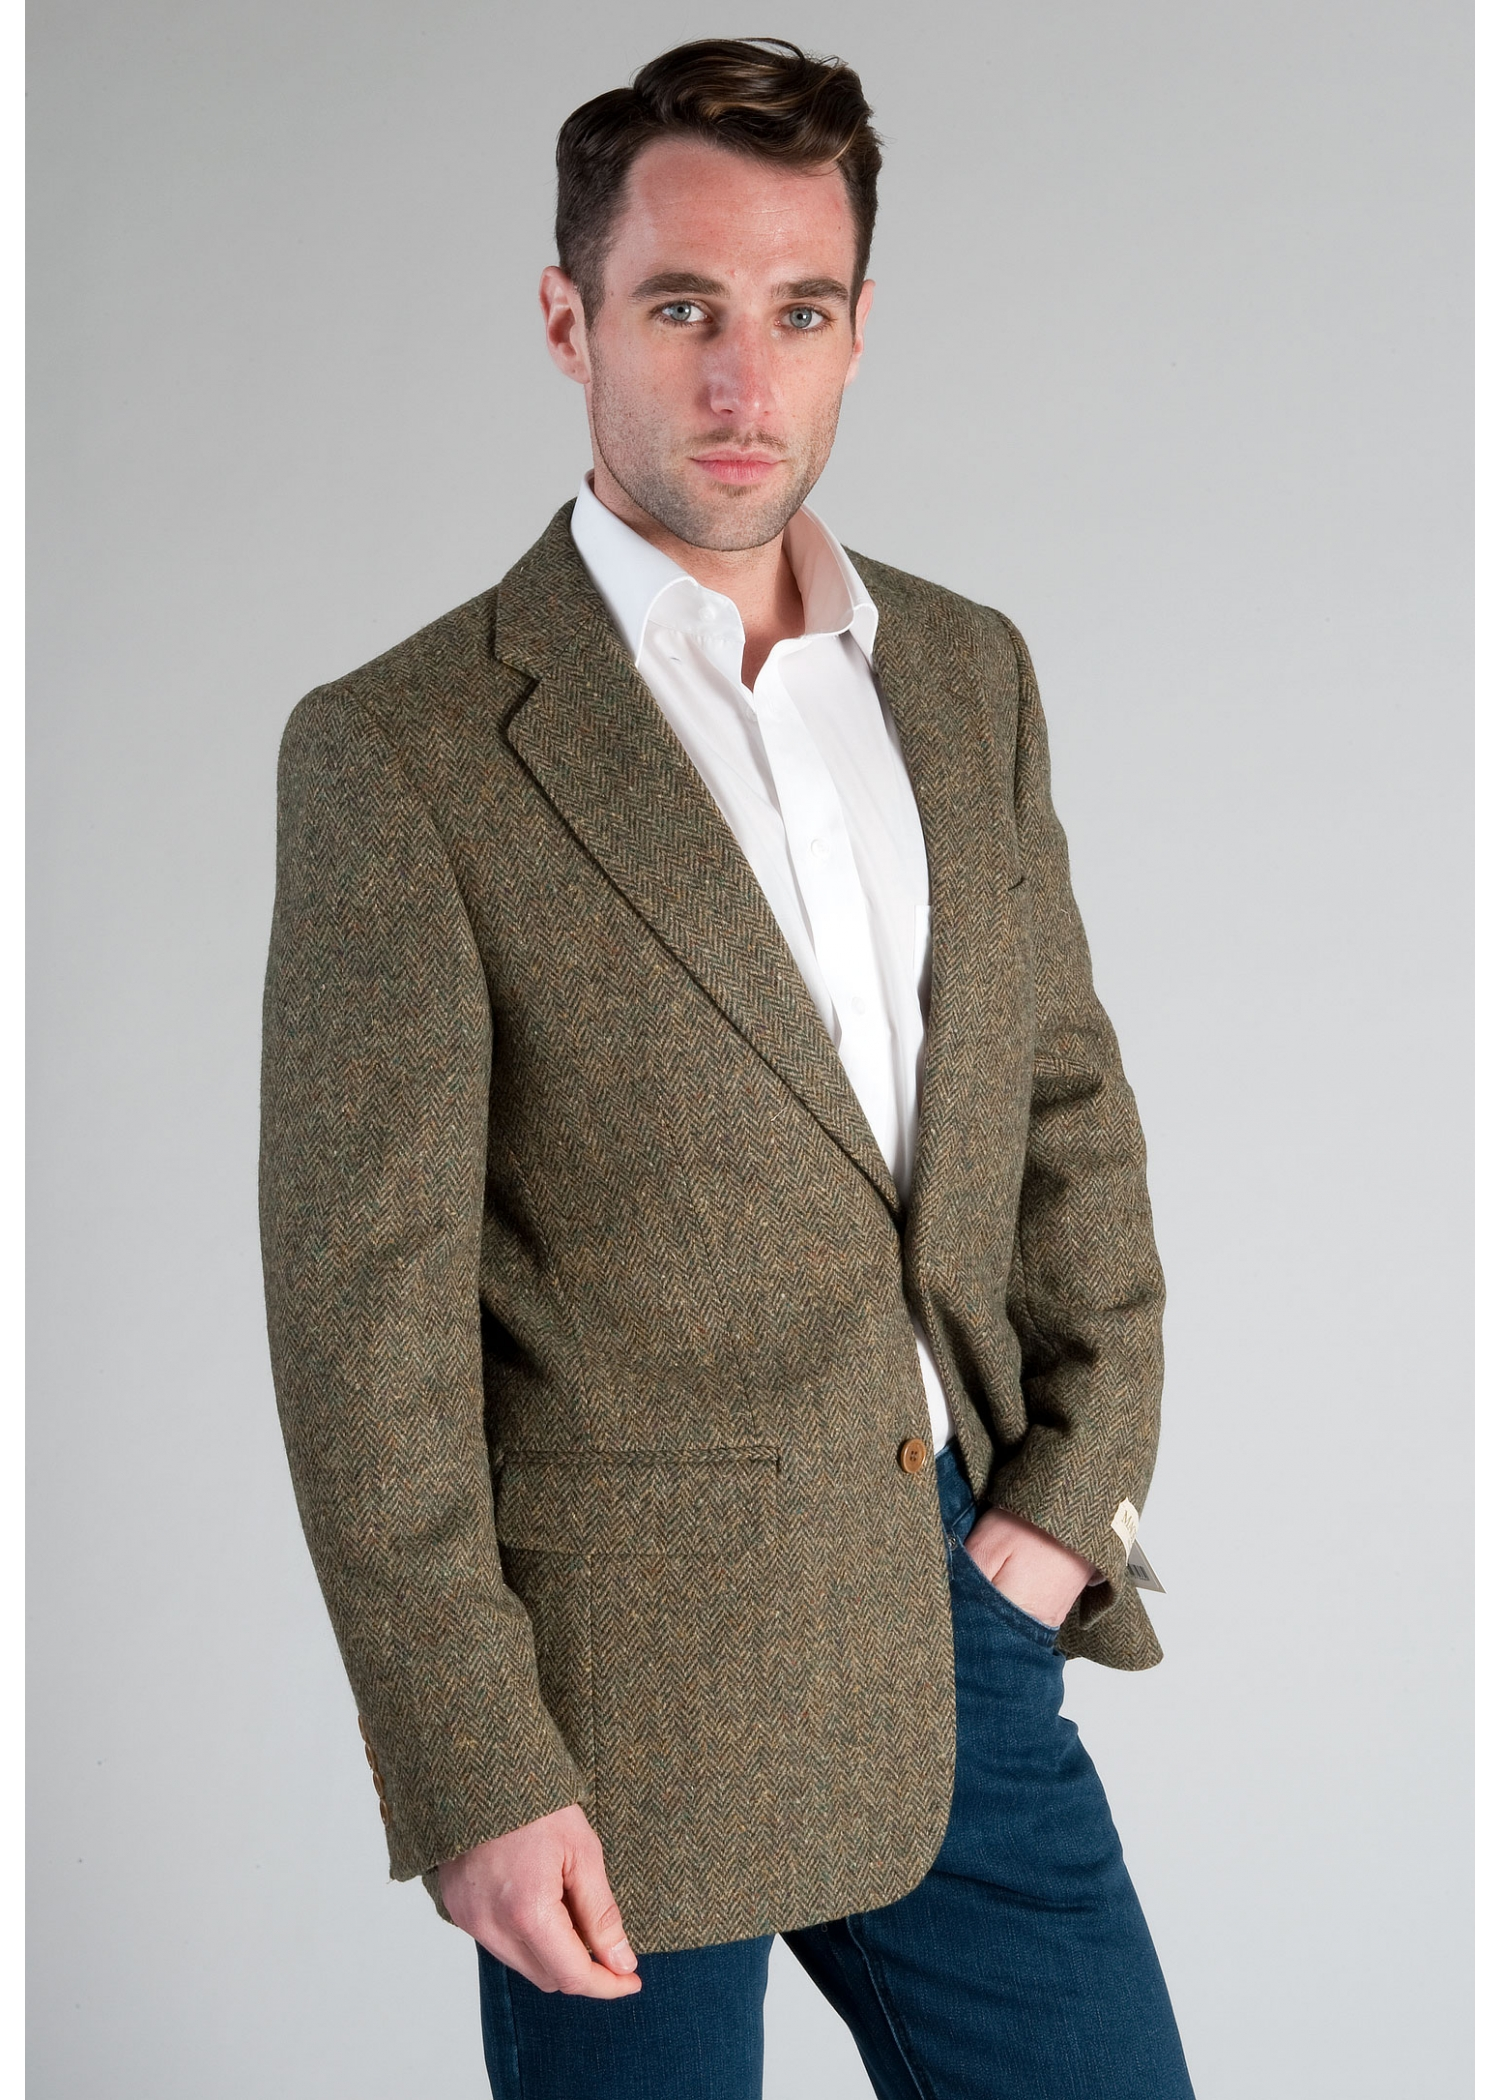 How to Wear Tweed Jackets